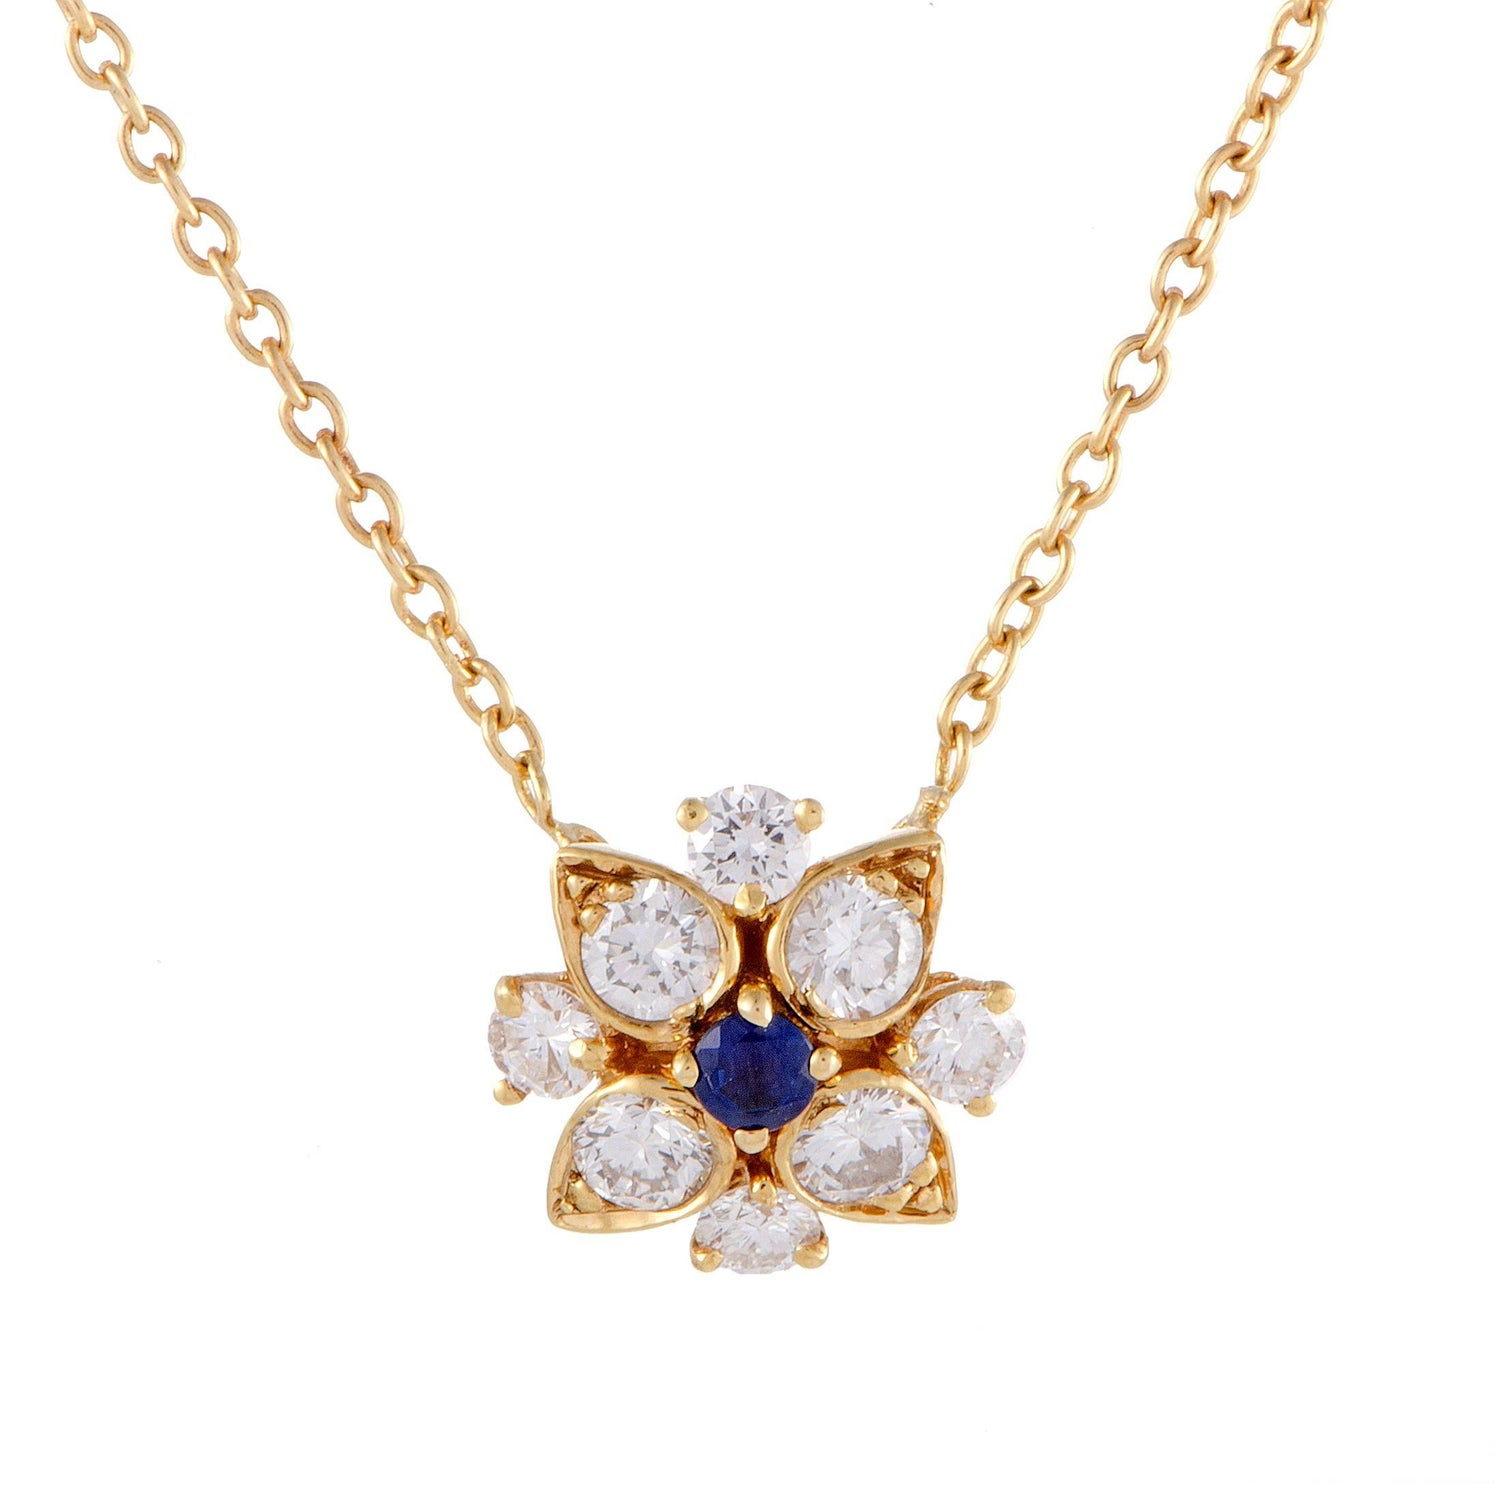 Van cleef amp arpels vca 18k yellow gold ruby cabochon amp diamond - Van Cleef Amp Arpels Diamond And Sapphire Yellow Gold Flower Pendant Necklace